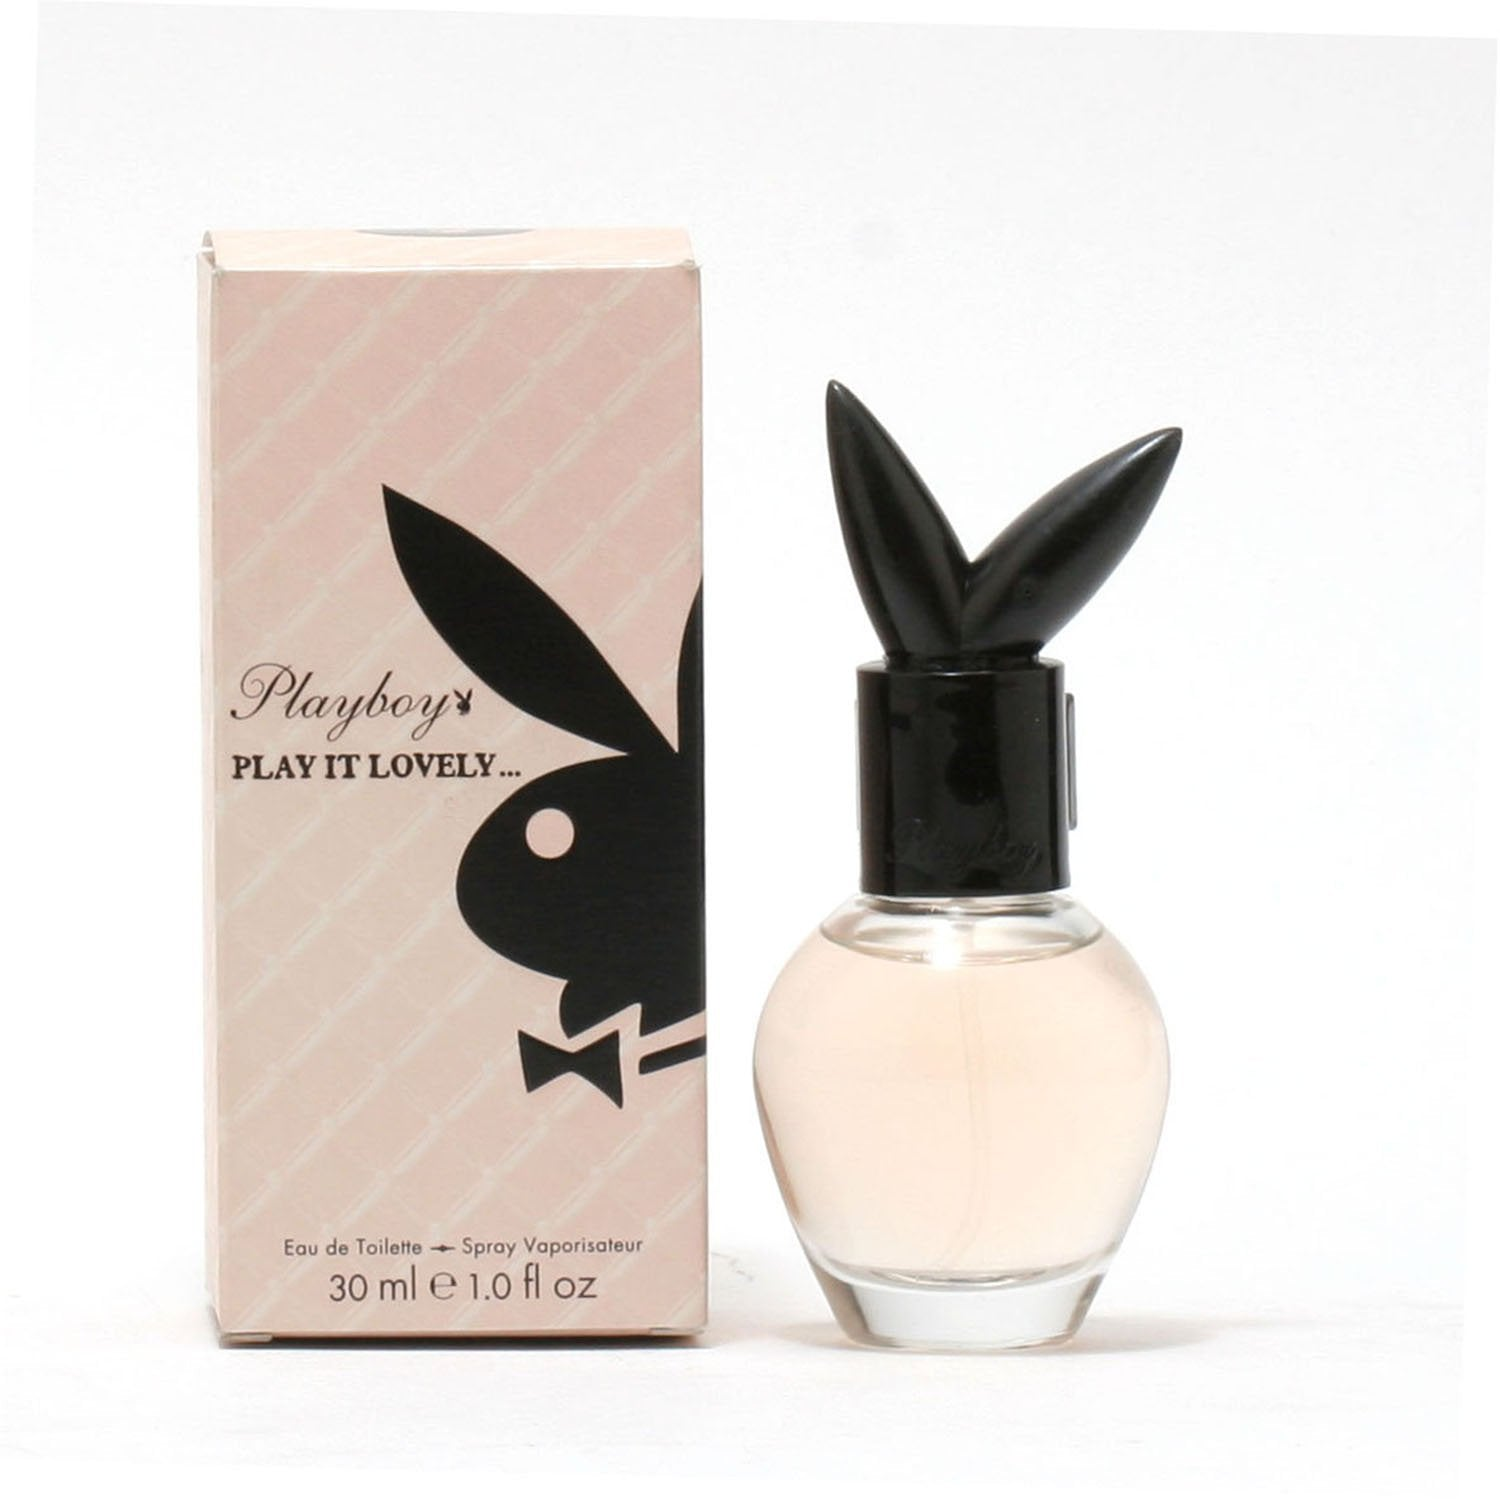 Perfume - PLAYBOY PLAY IT LOVELY FOR WOMEN - EAU DE TOILETTE SPRAY, 1.0 OZ